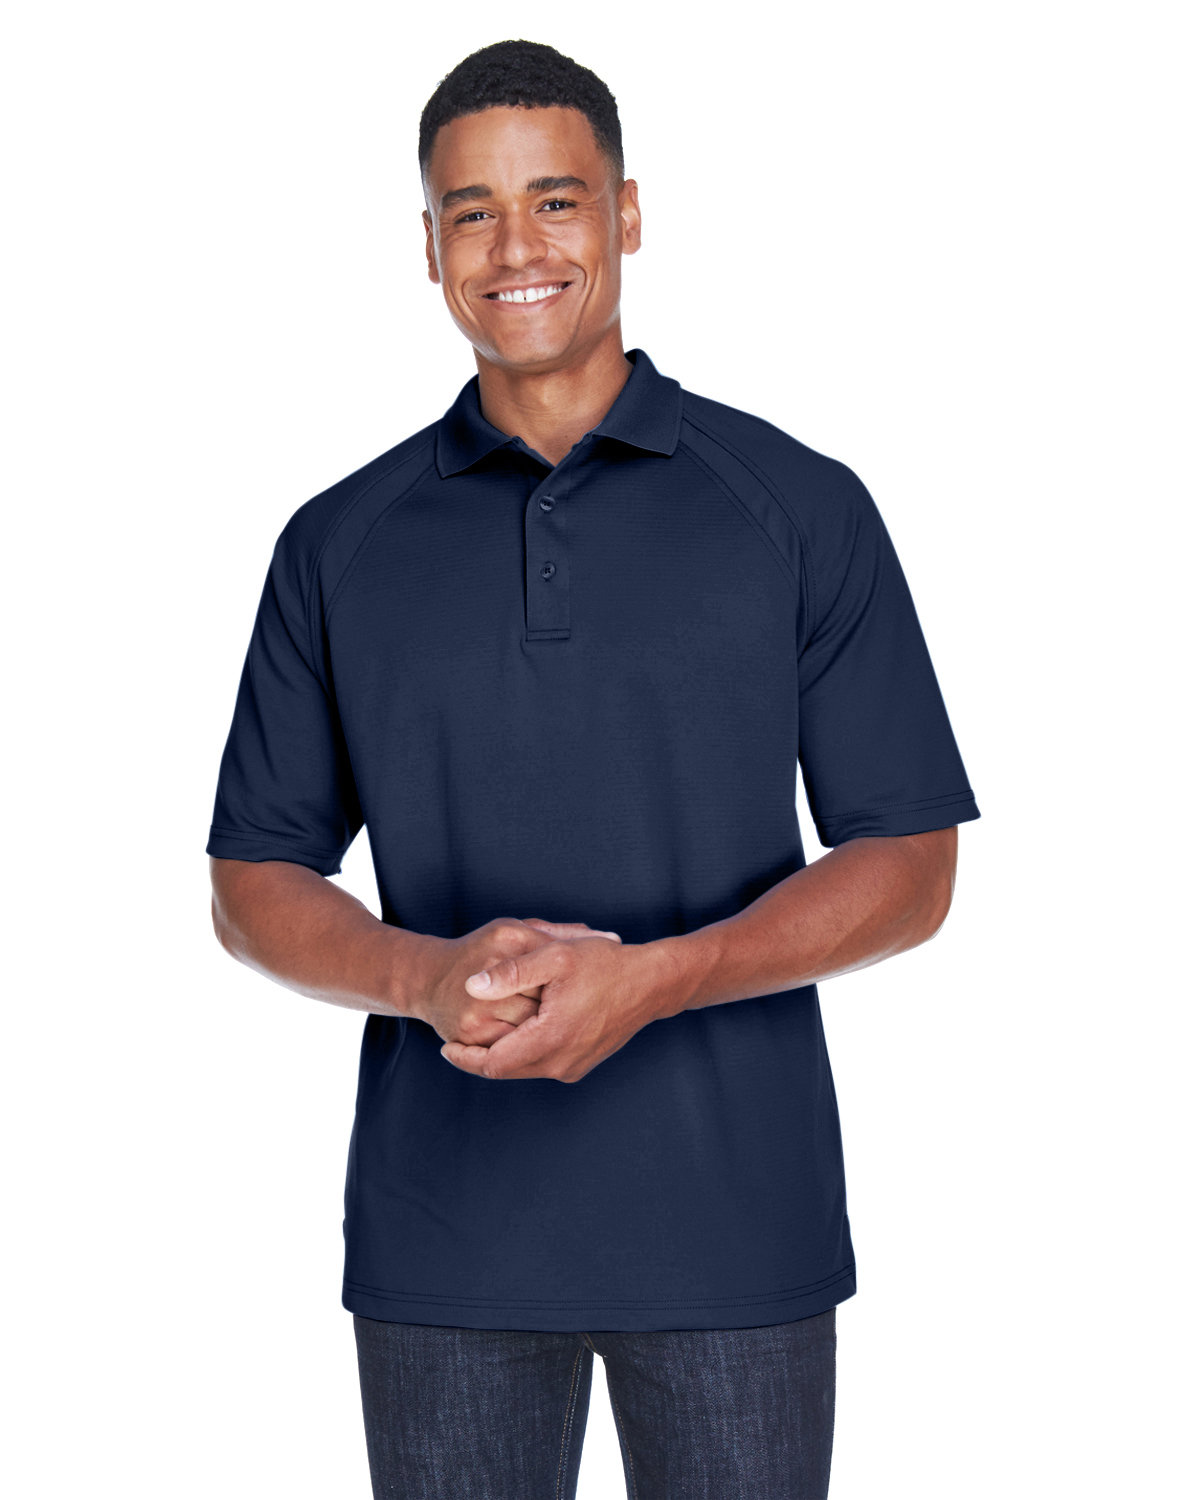 Extreme Men's Eperformance™ Ottoman Textured Polo CLASSIC NAVY